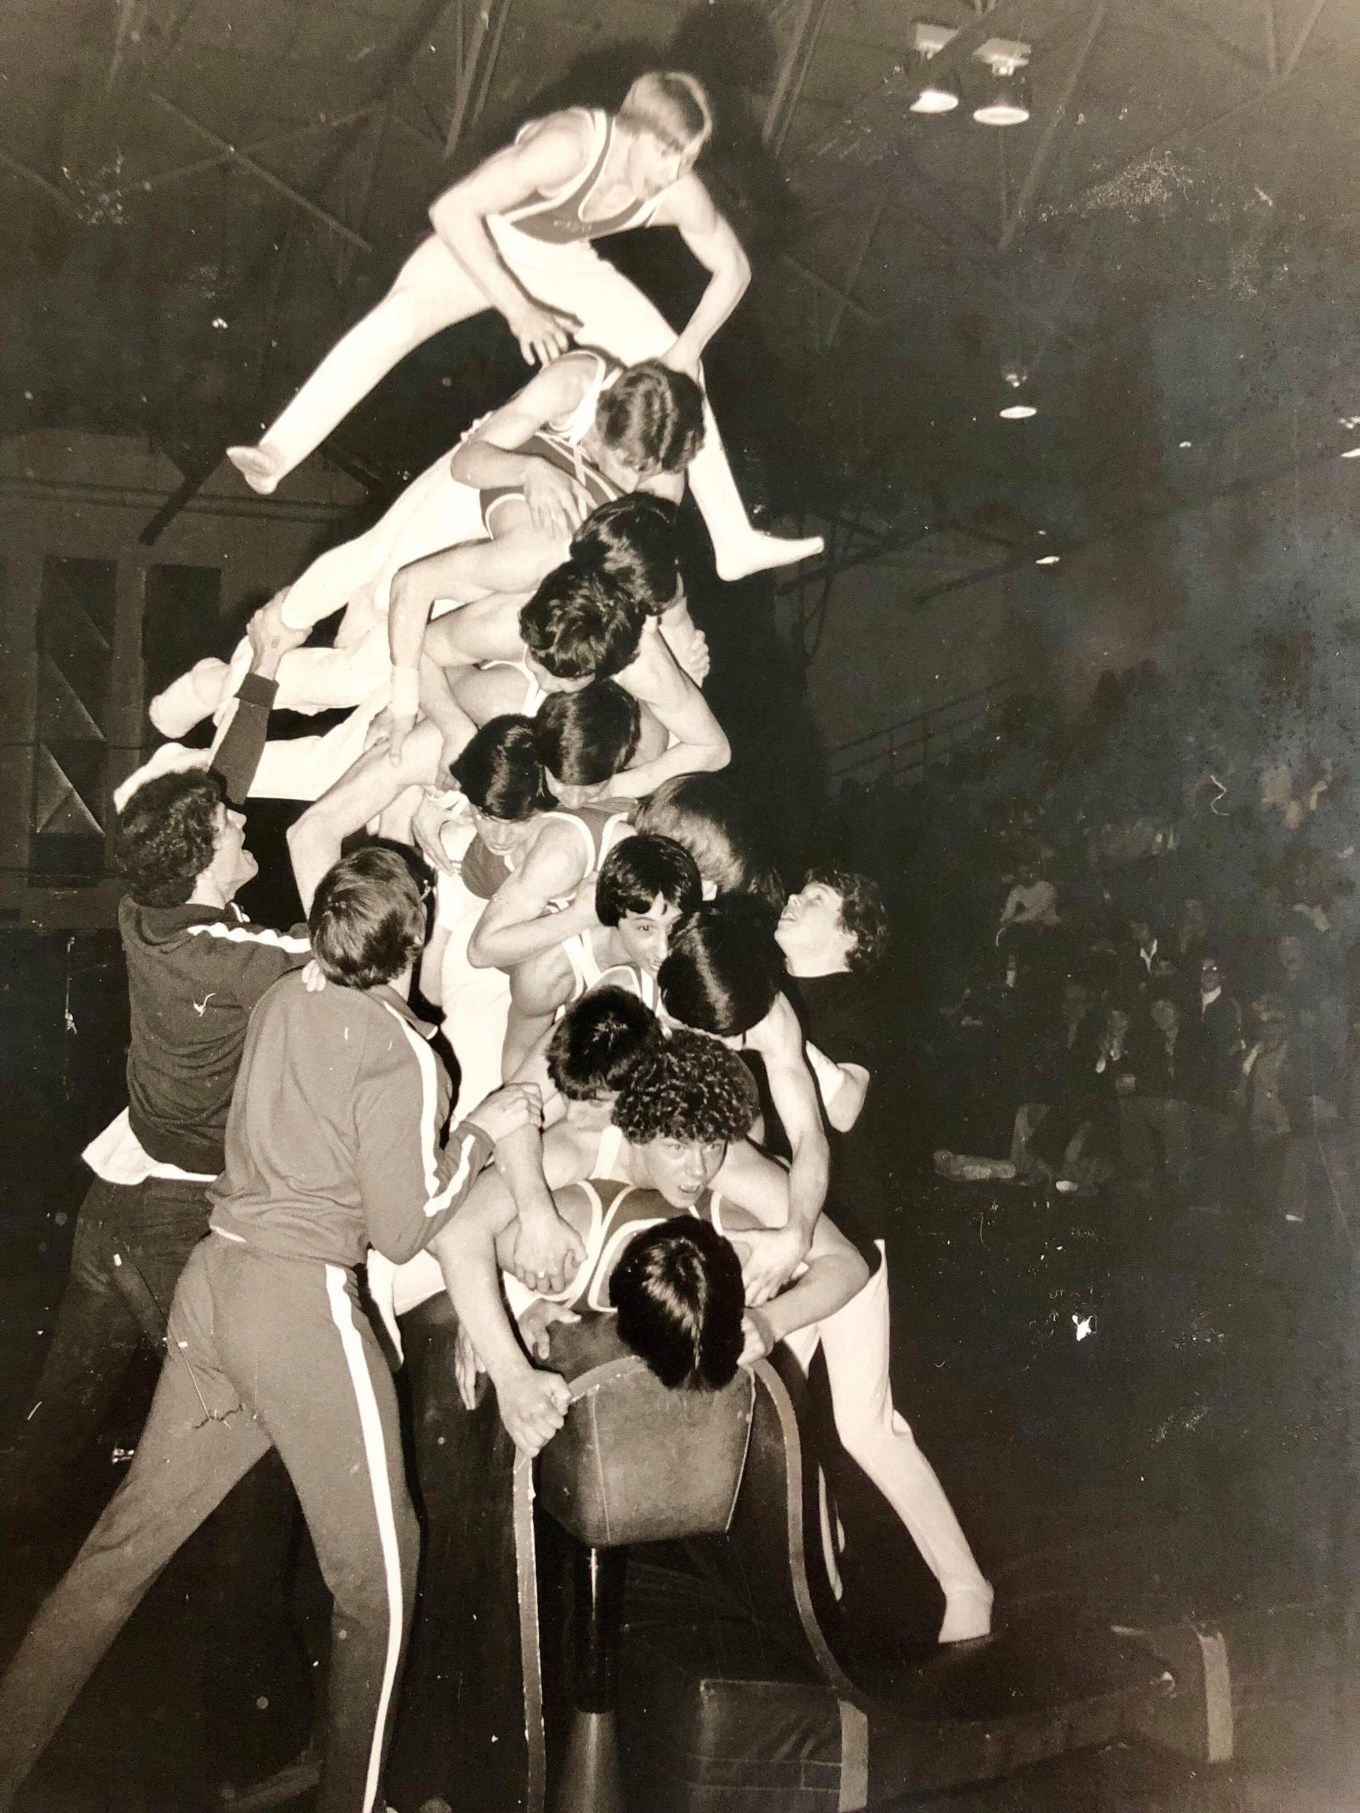 1980 BHS gymnastics team shenanigans. Photo credit: Merrill B. Clark